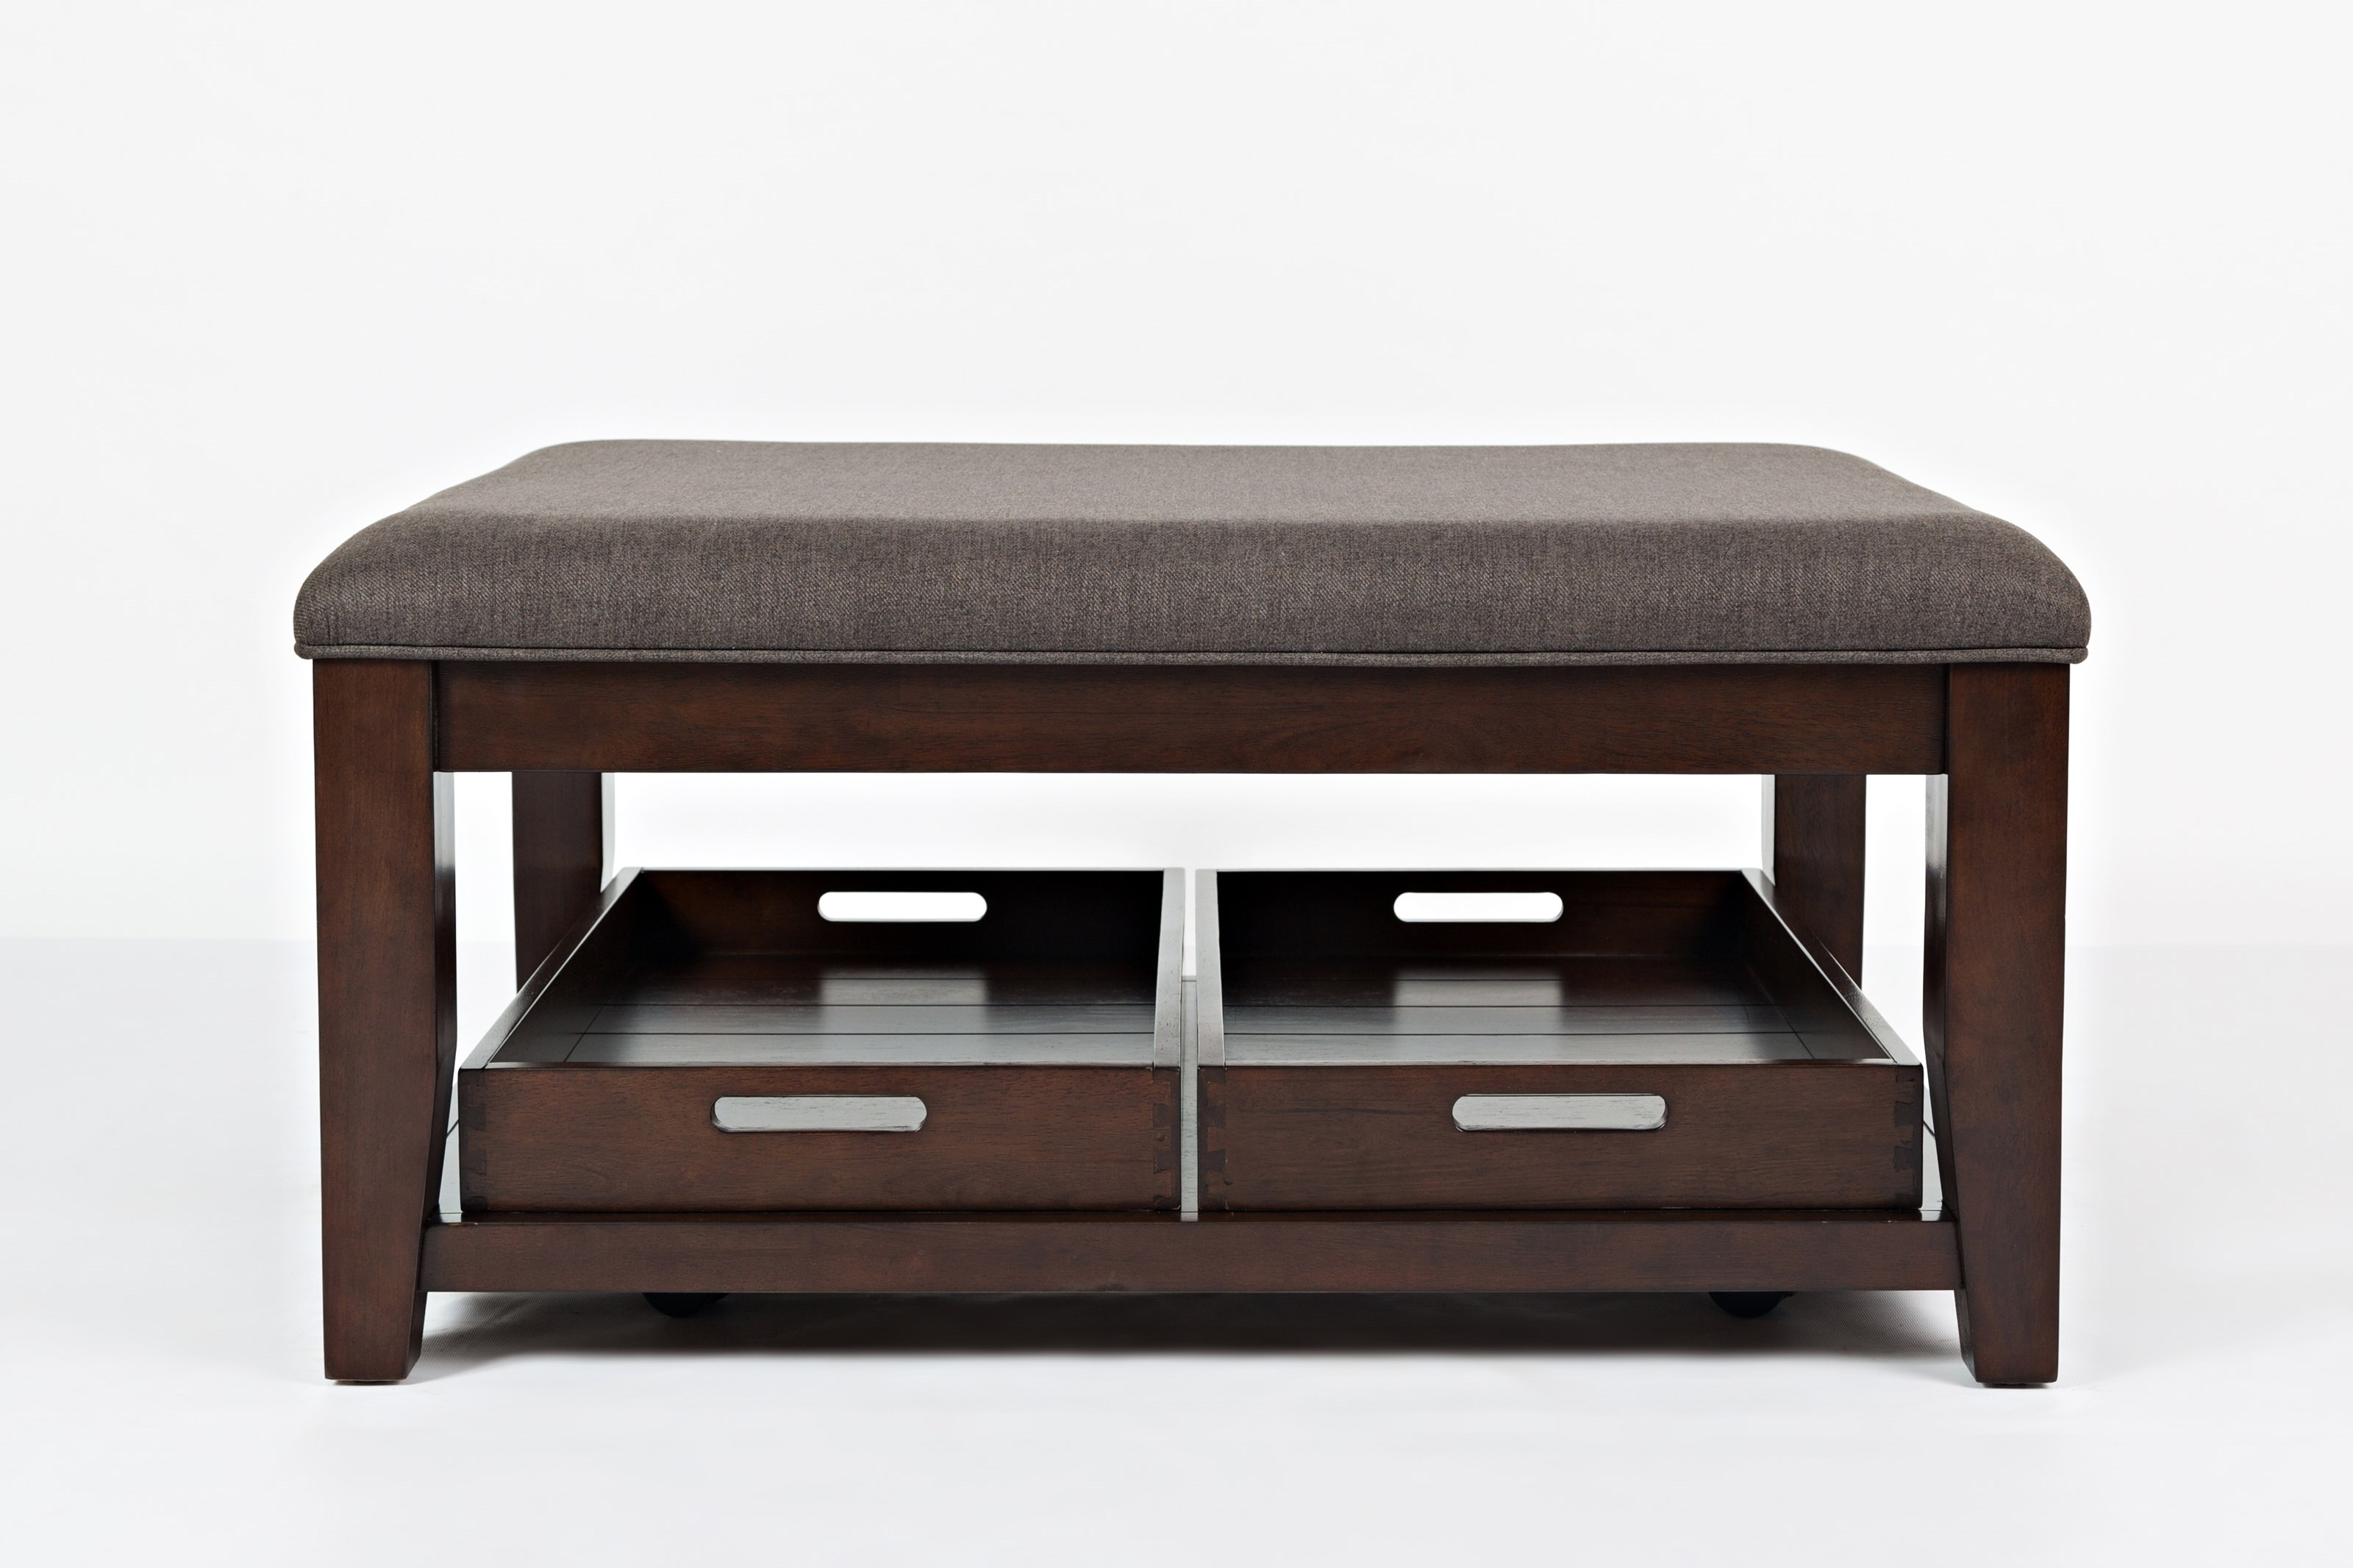 twin cities ottoman cocktail table by jofran at pilgrim furniture city